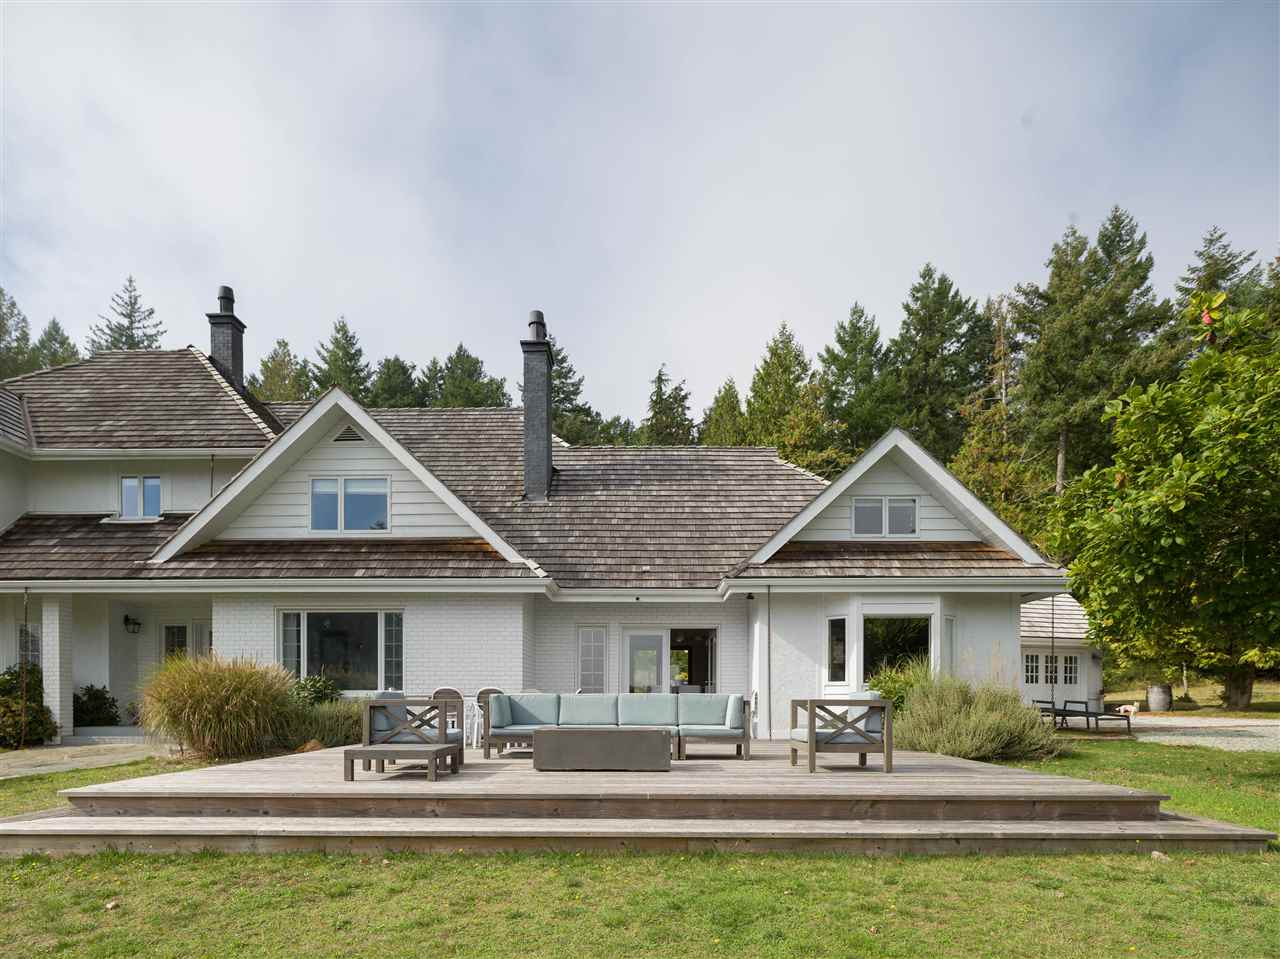 165 N WARBLER ROAD - Galiano Island House with Acreage for sale, 8 Bedrooms (R2509020) - #2